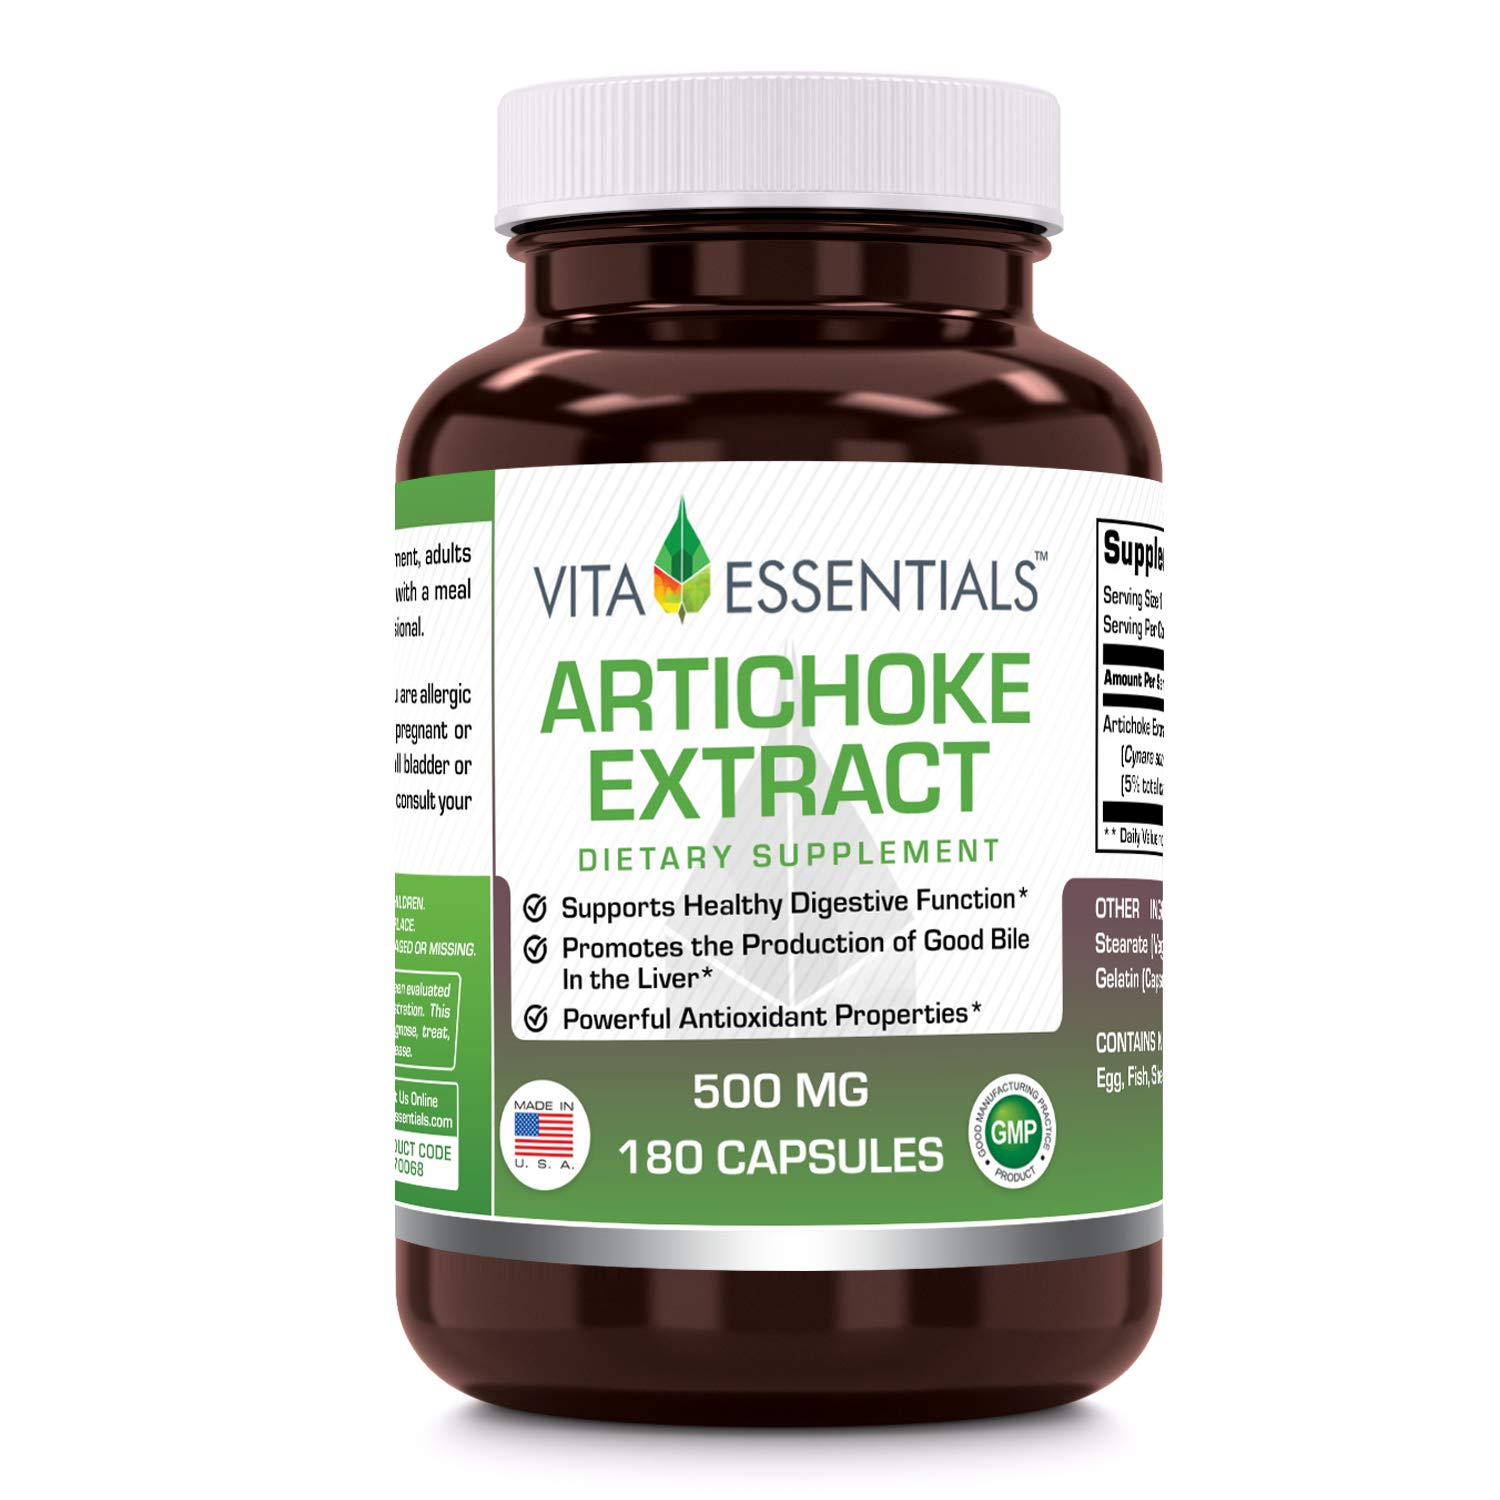 Vita Essentials Artichoke Extract 500 Mg Capsules. 180 Count